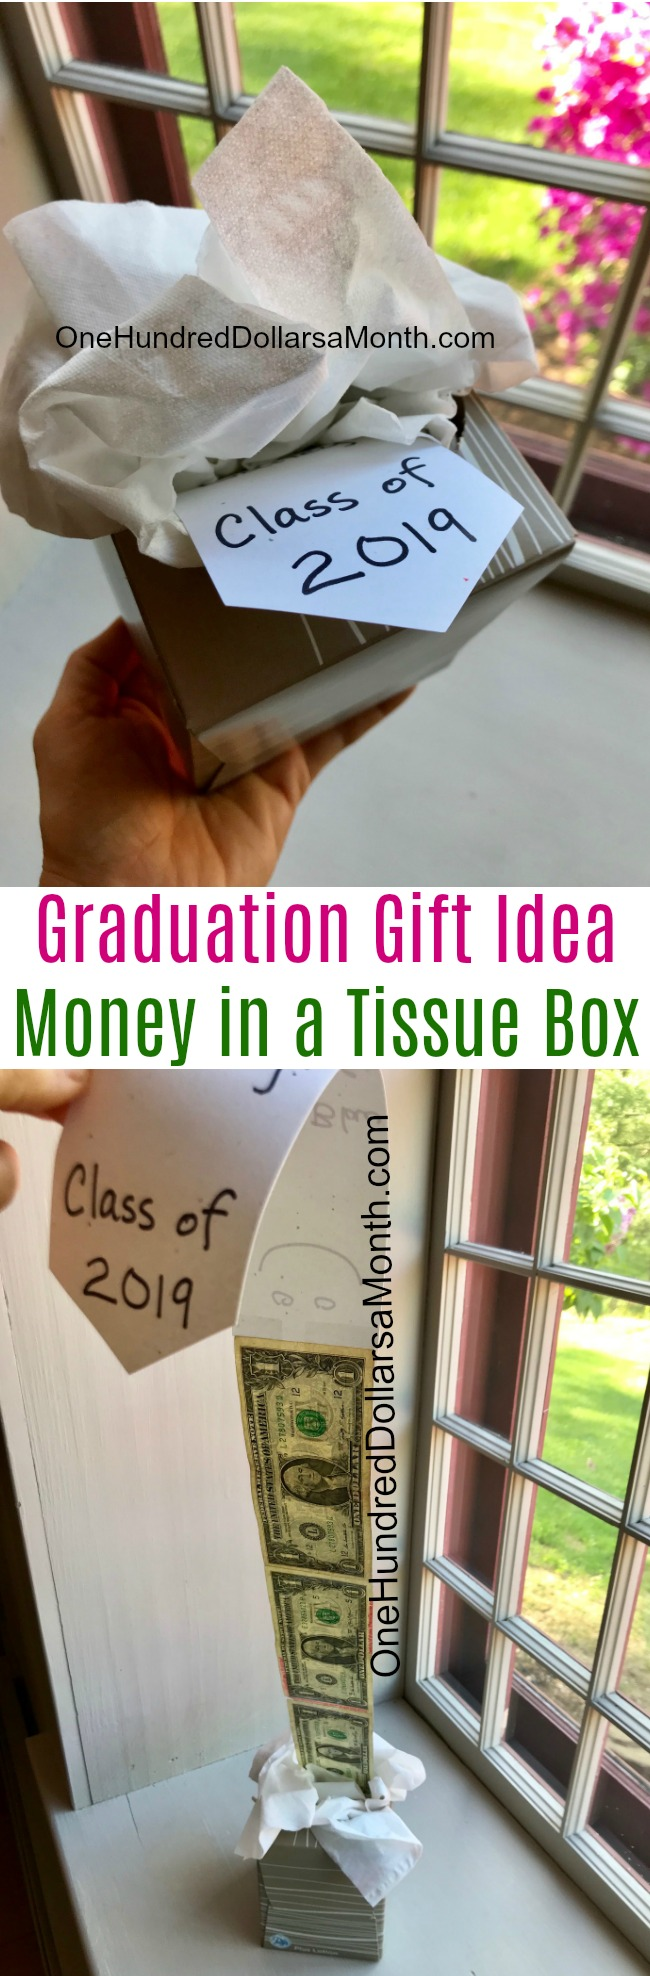 Graduation Gift Idea – Money in a Tissue Box